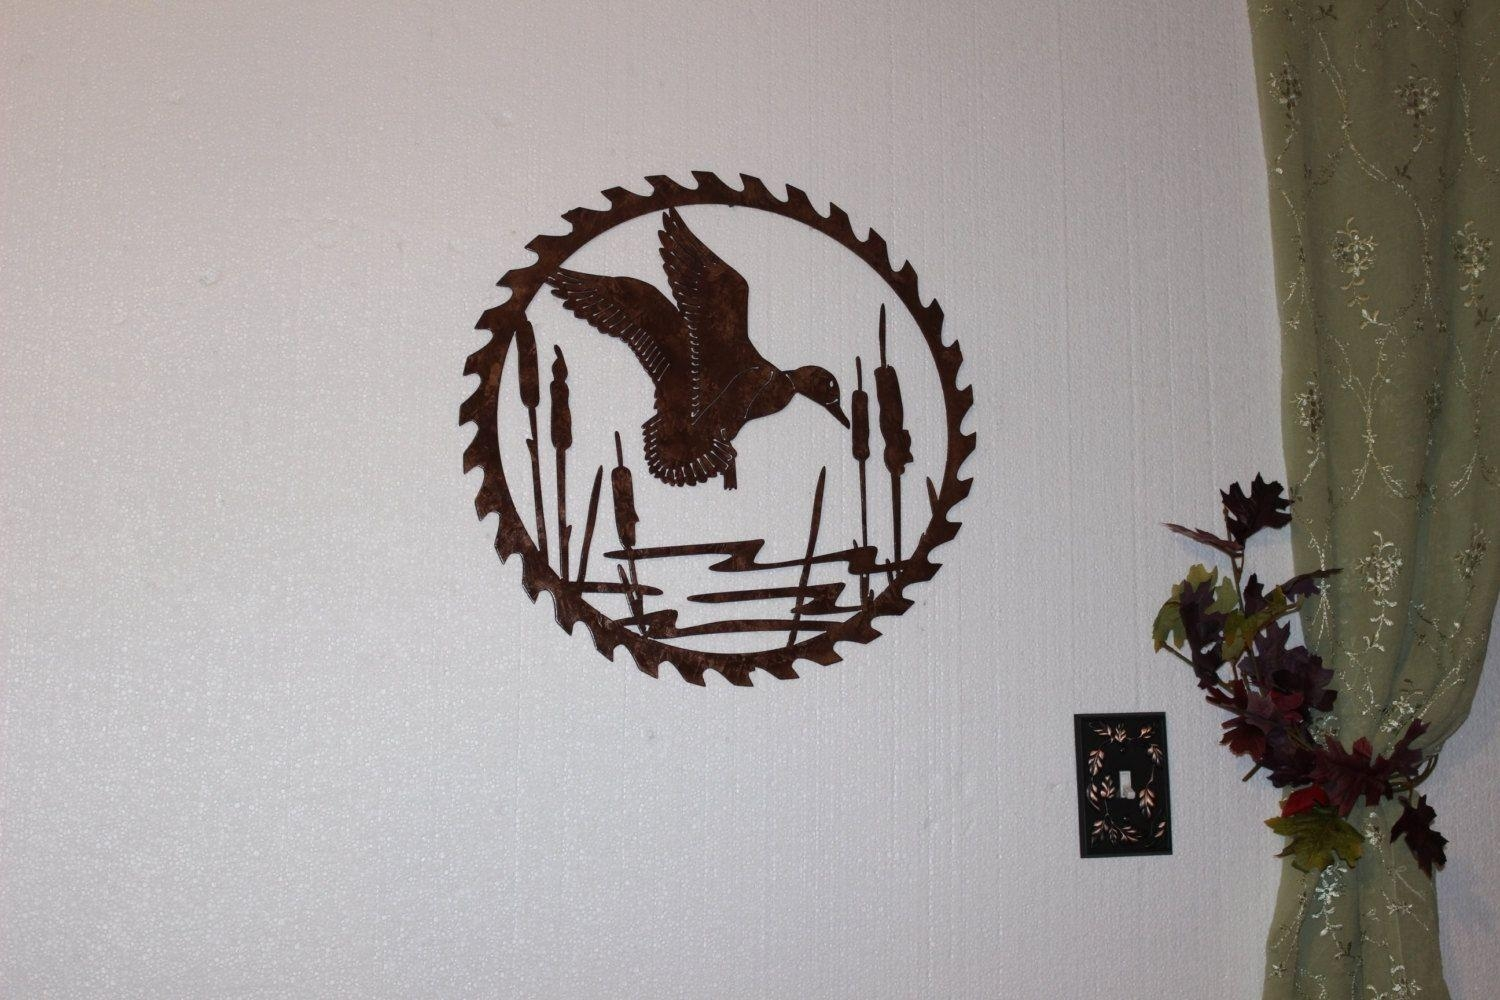 Hand Made Duck In Reeds On Sawblade Metal Wall Art Country Rustic With Regard To Country Metal Wall Art (Image 11 of 20)